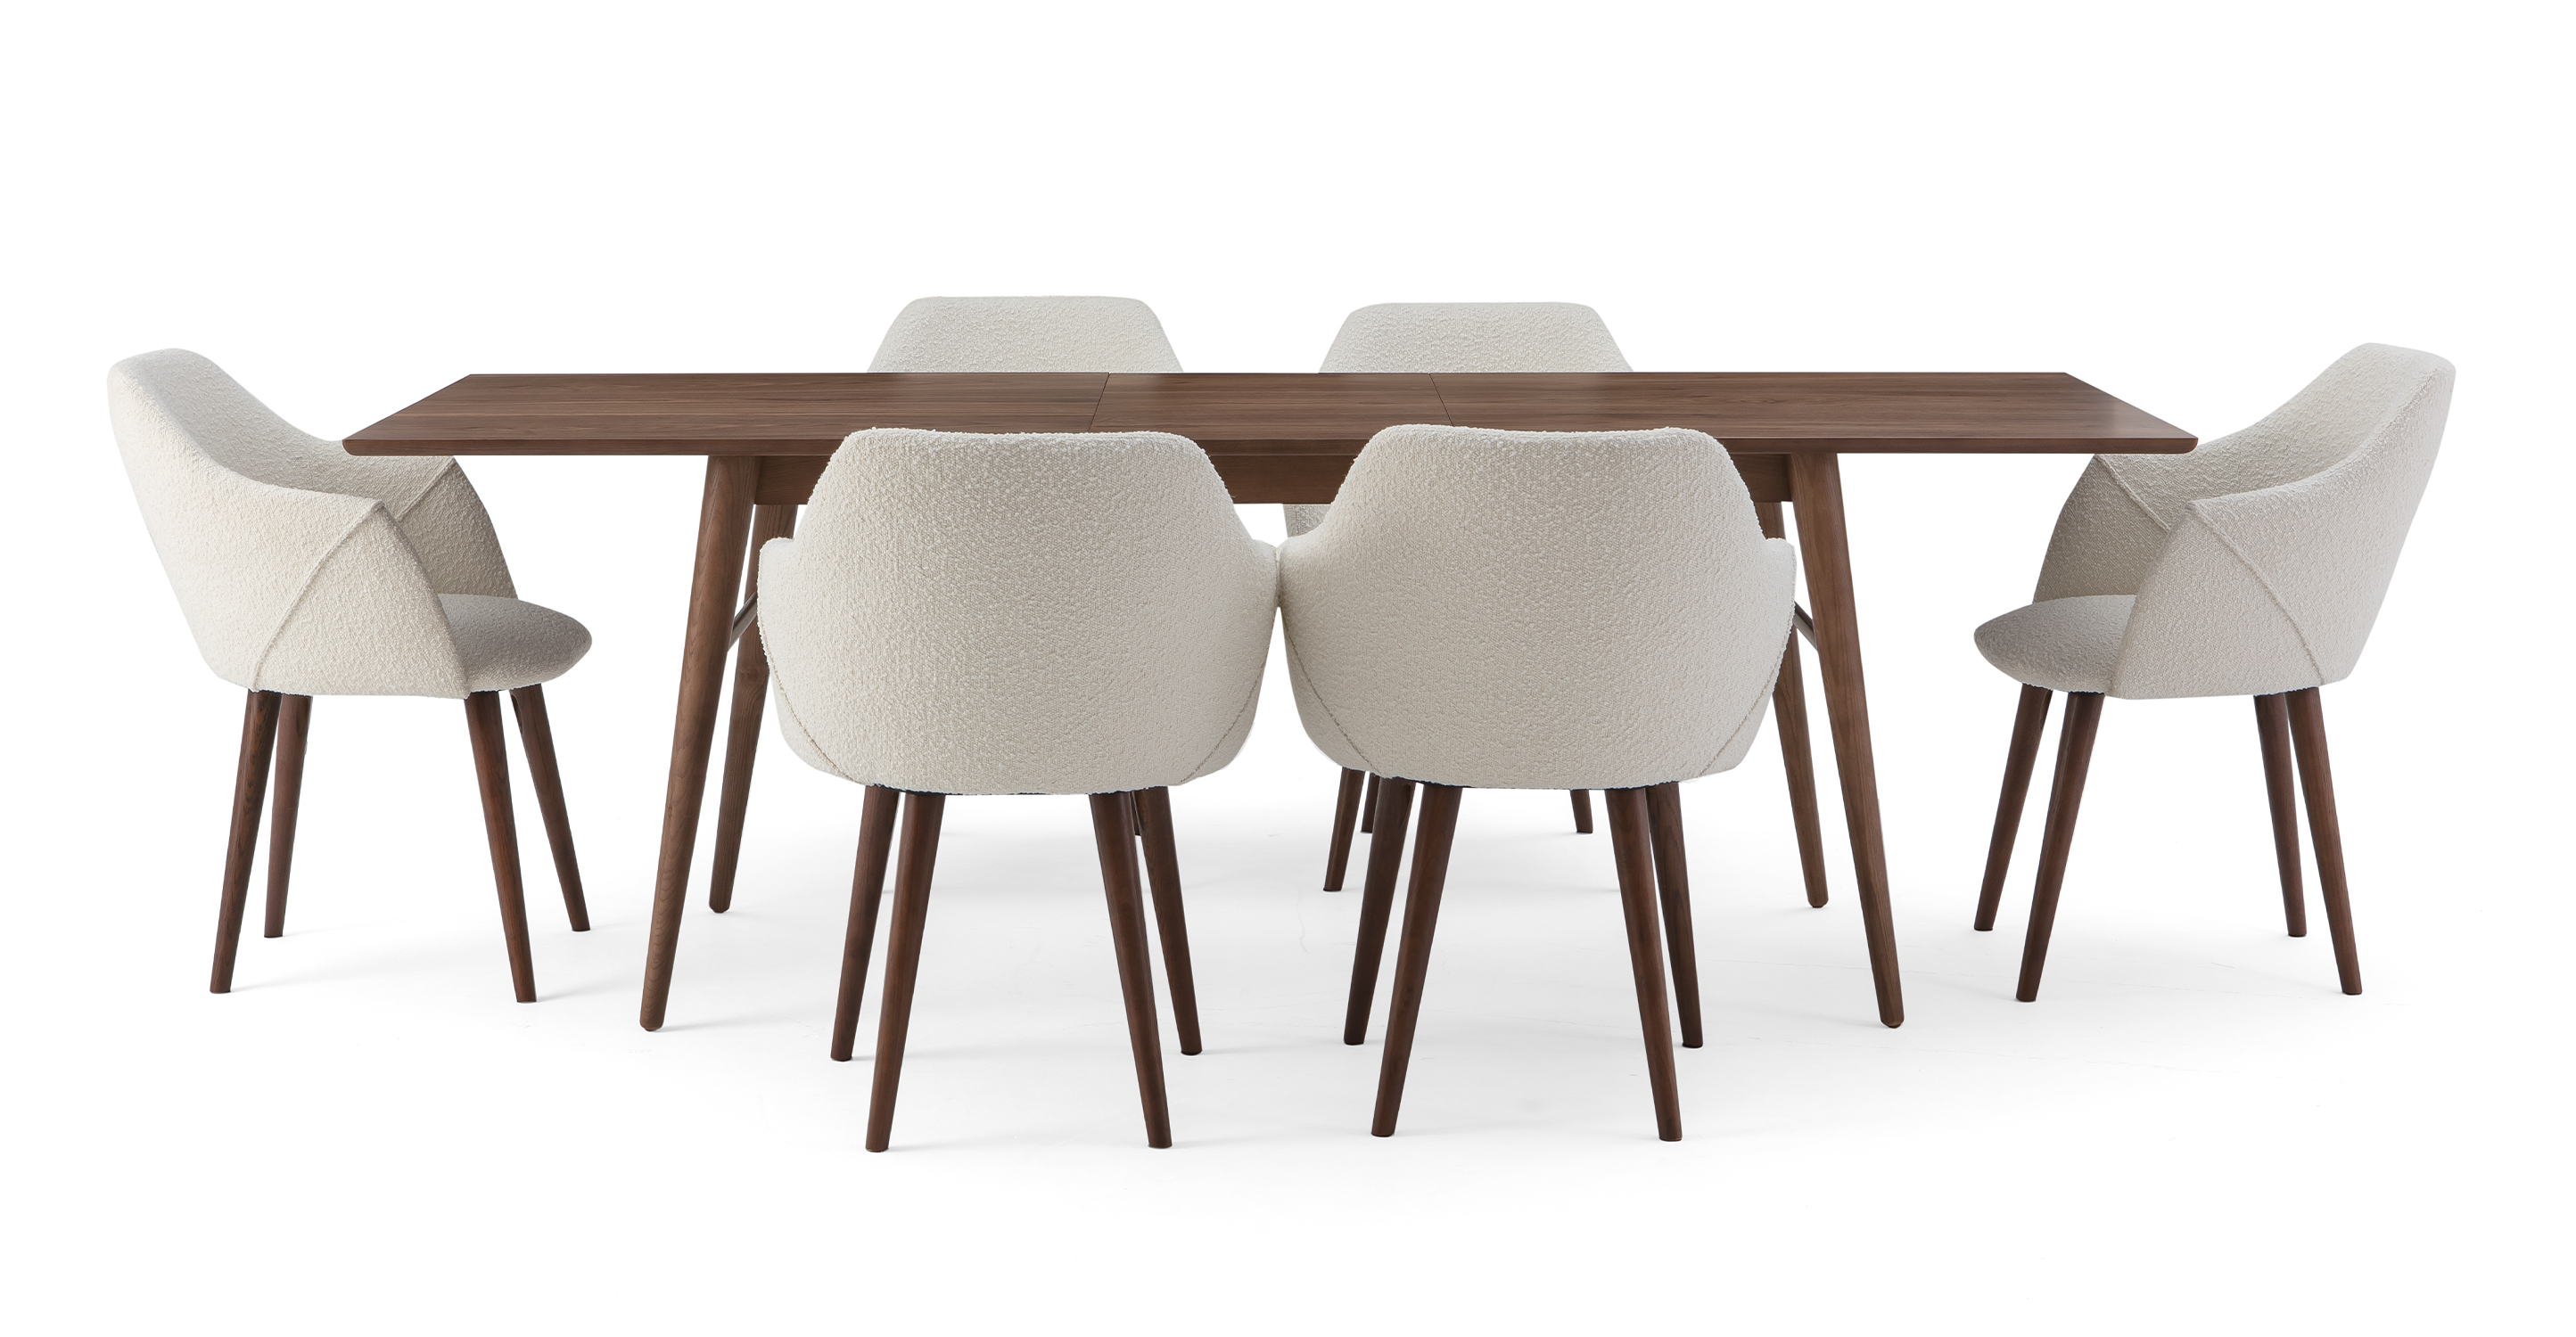 """Smiley 71-89"""" Extendable Dining Table (6) Berki Chairs, Walnut/Blanc Boucle"""